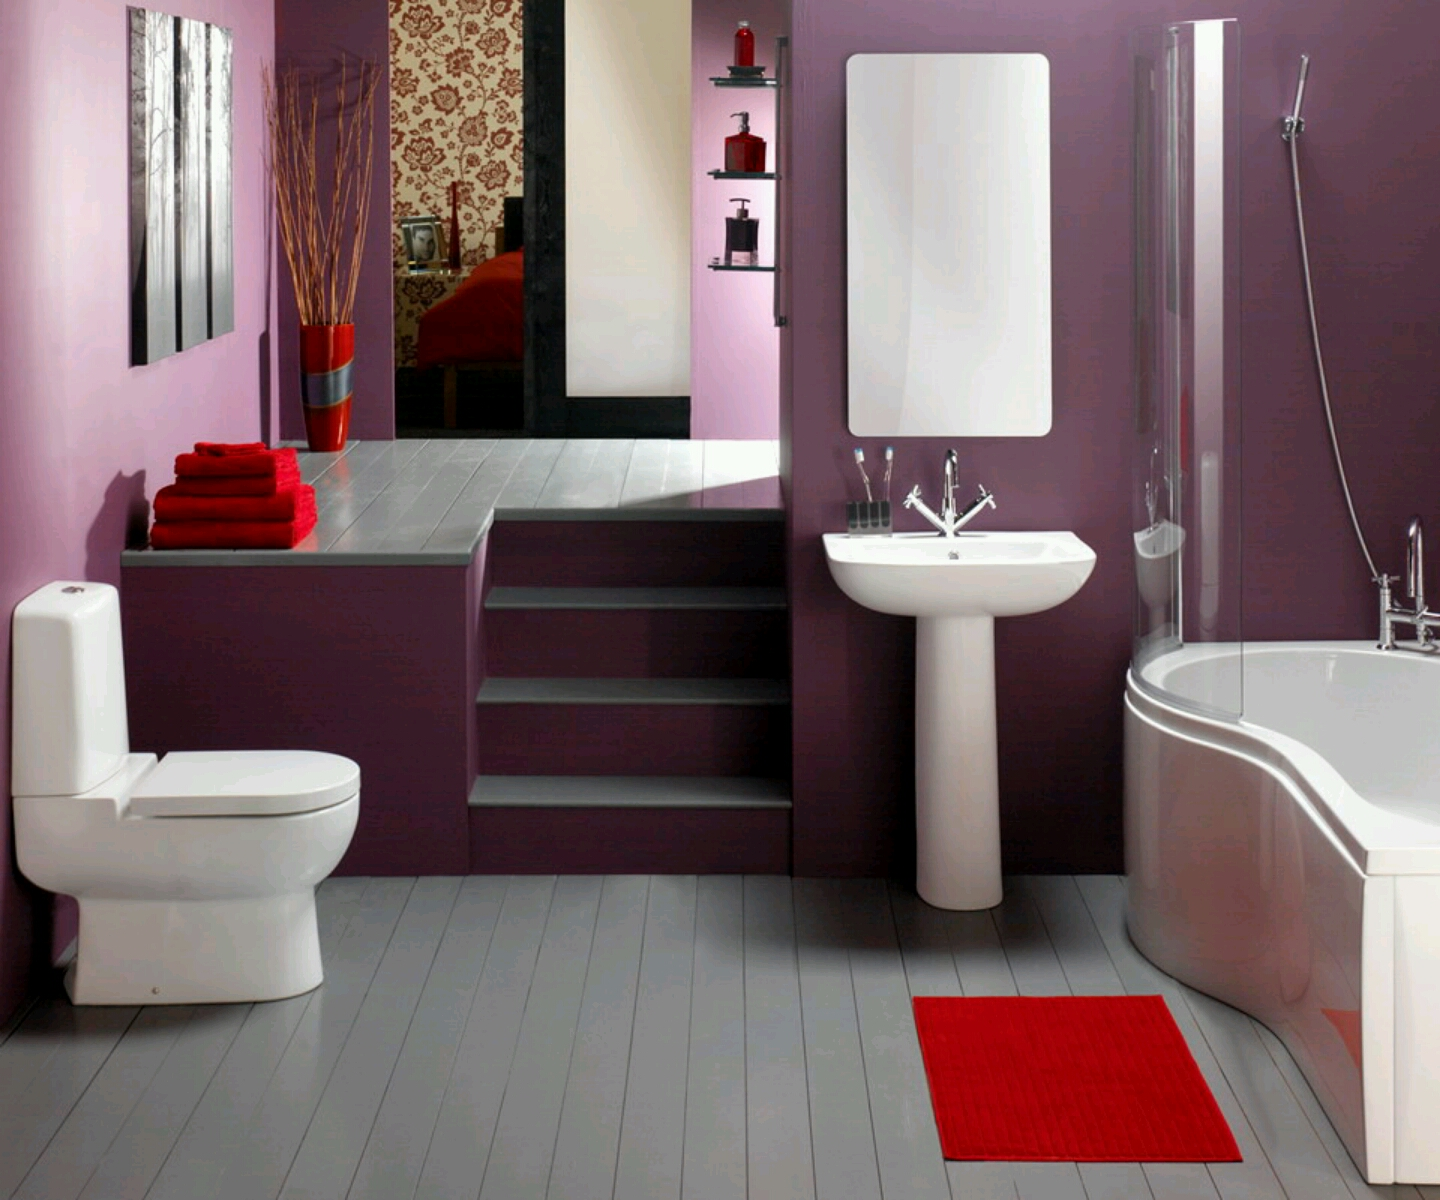 House Bathroom Design New Home Designs Latest Luxury Modern Bathrooms Designs